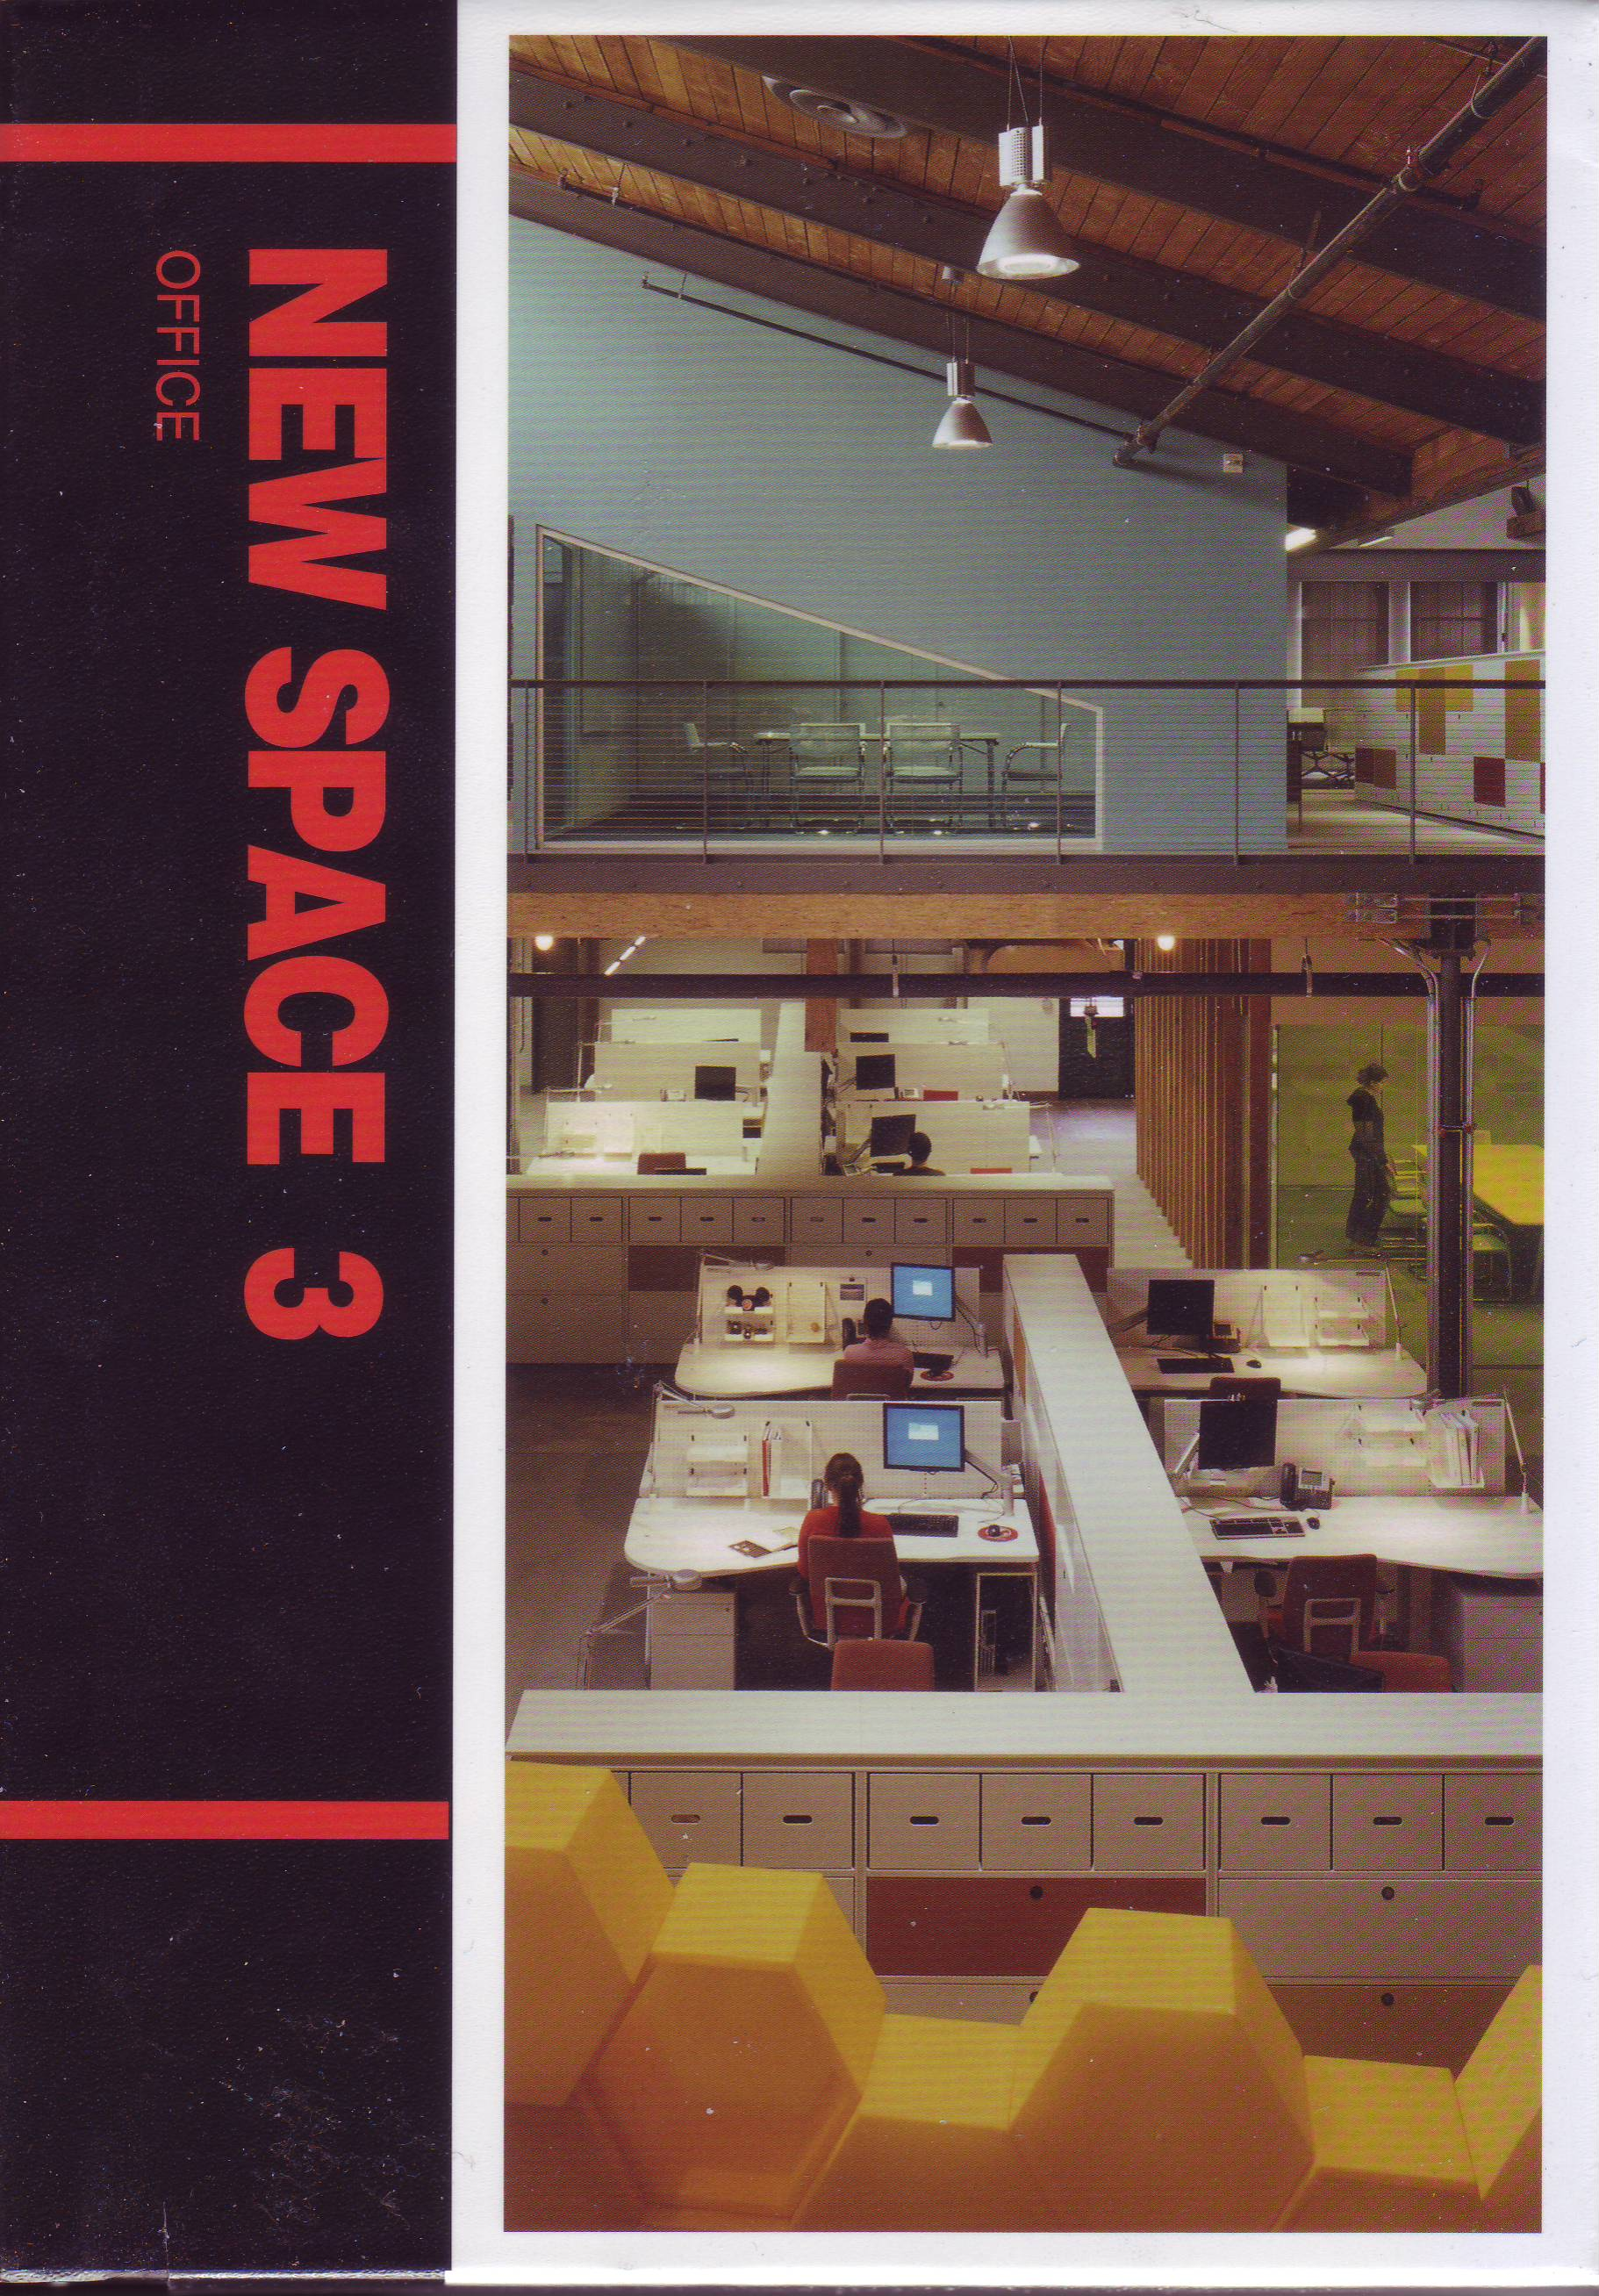 NEW SPACE. 3(양장본)